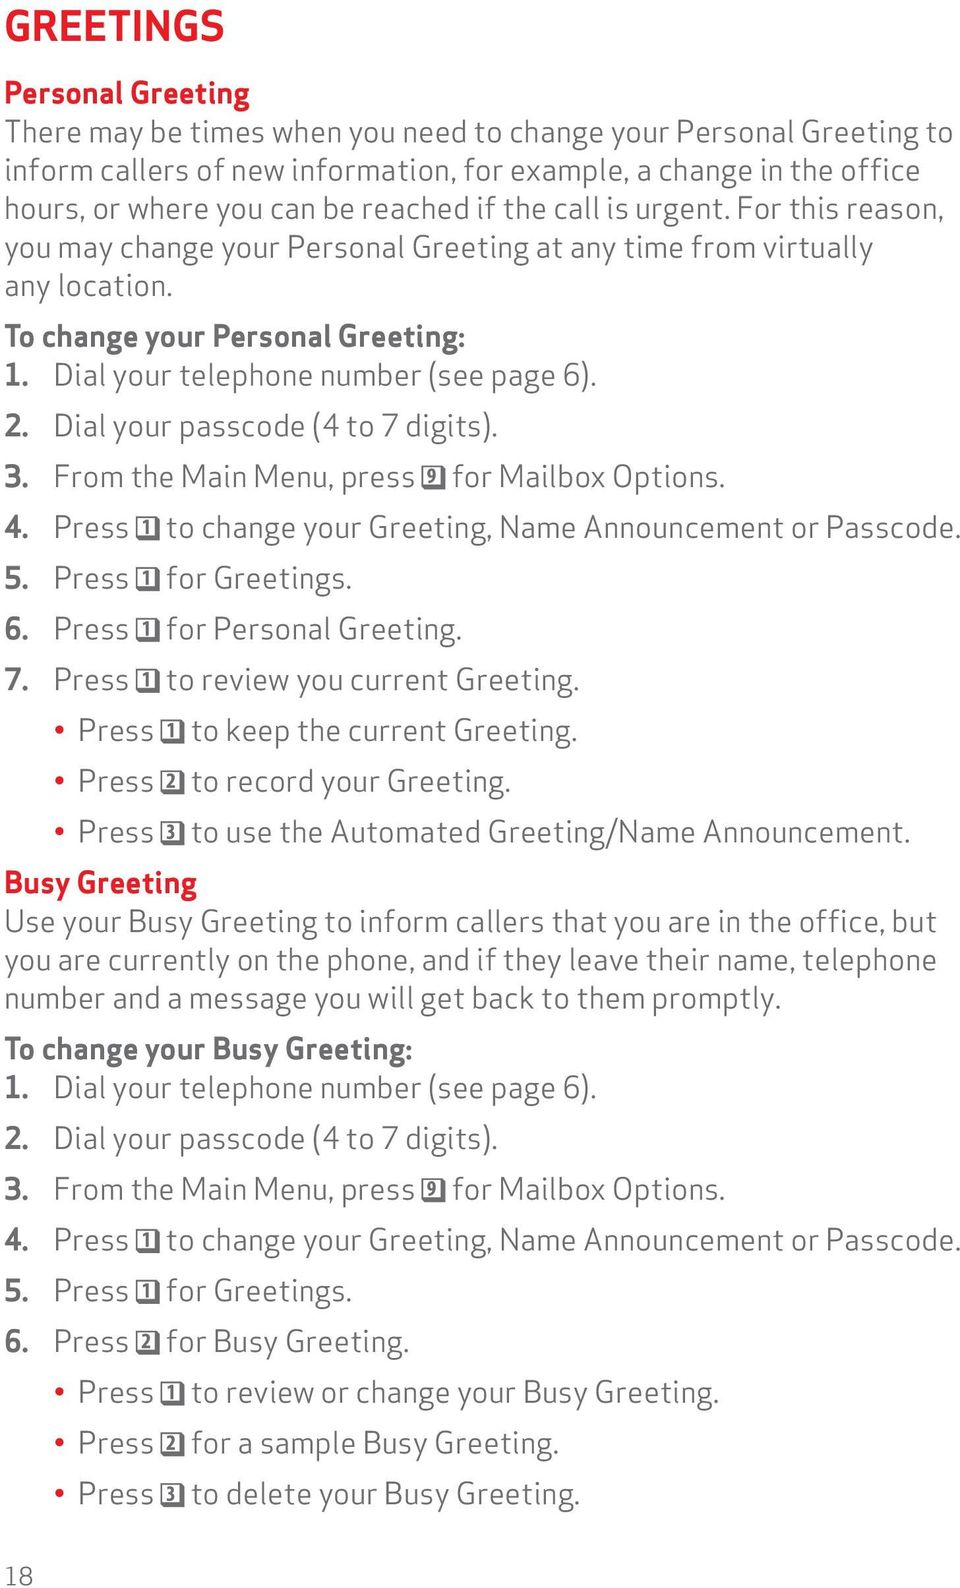 3. From the Main Menu, press for Mailbox Options. 4. Press to change your Greeting, Name Announcement or Passcode. 5. Press for Greetings. 6. Press for Personal Greeting. 7.